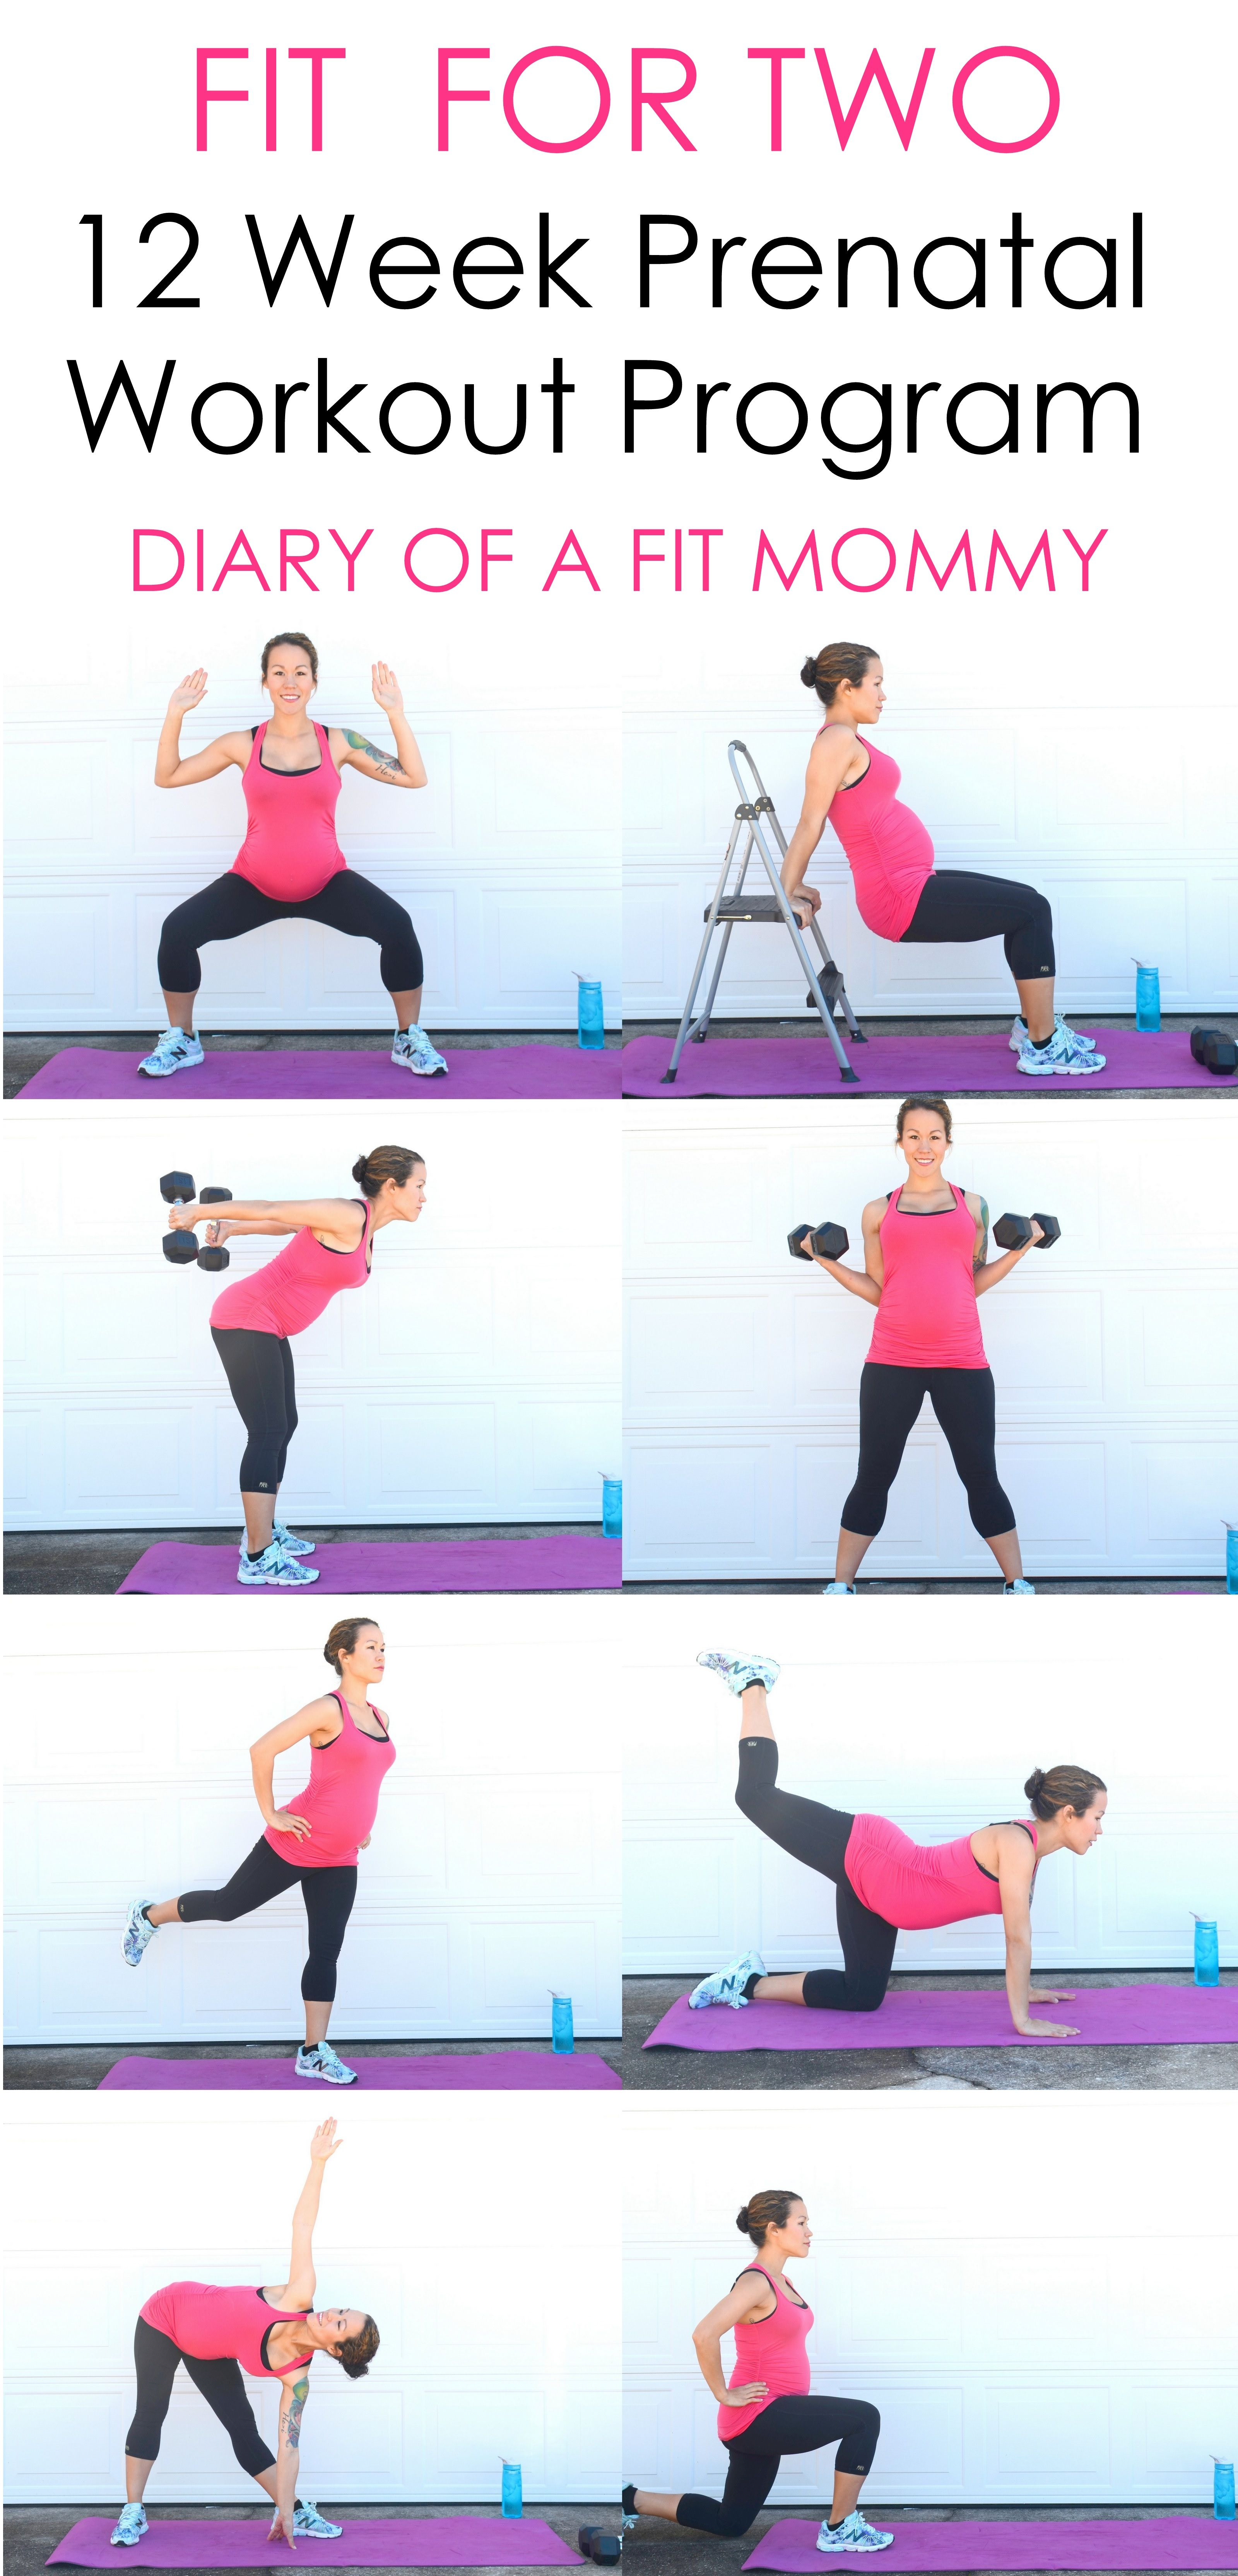 Exercise for pregnant women in the gym: a set of exercises